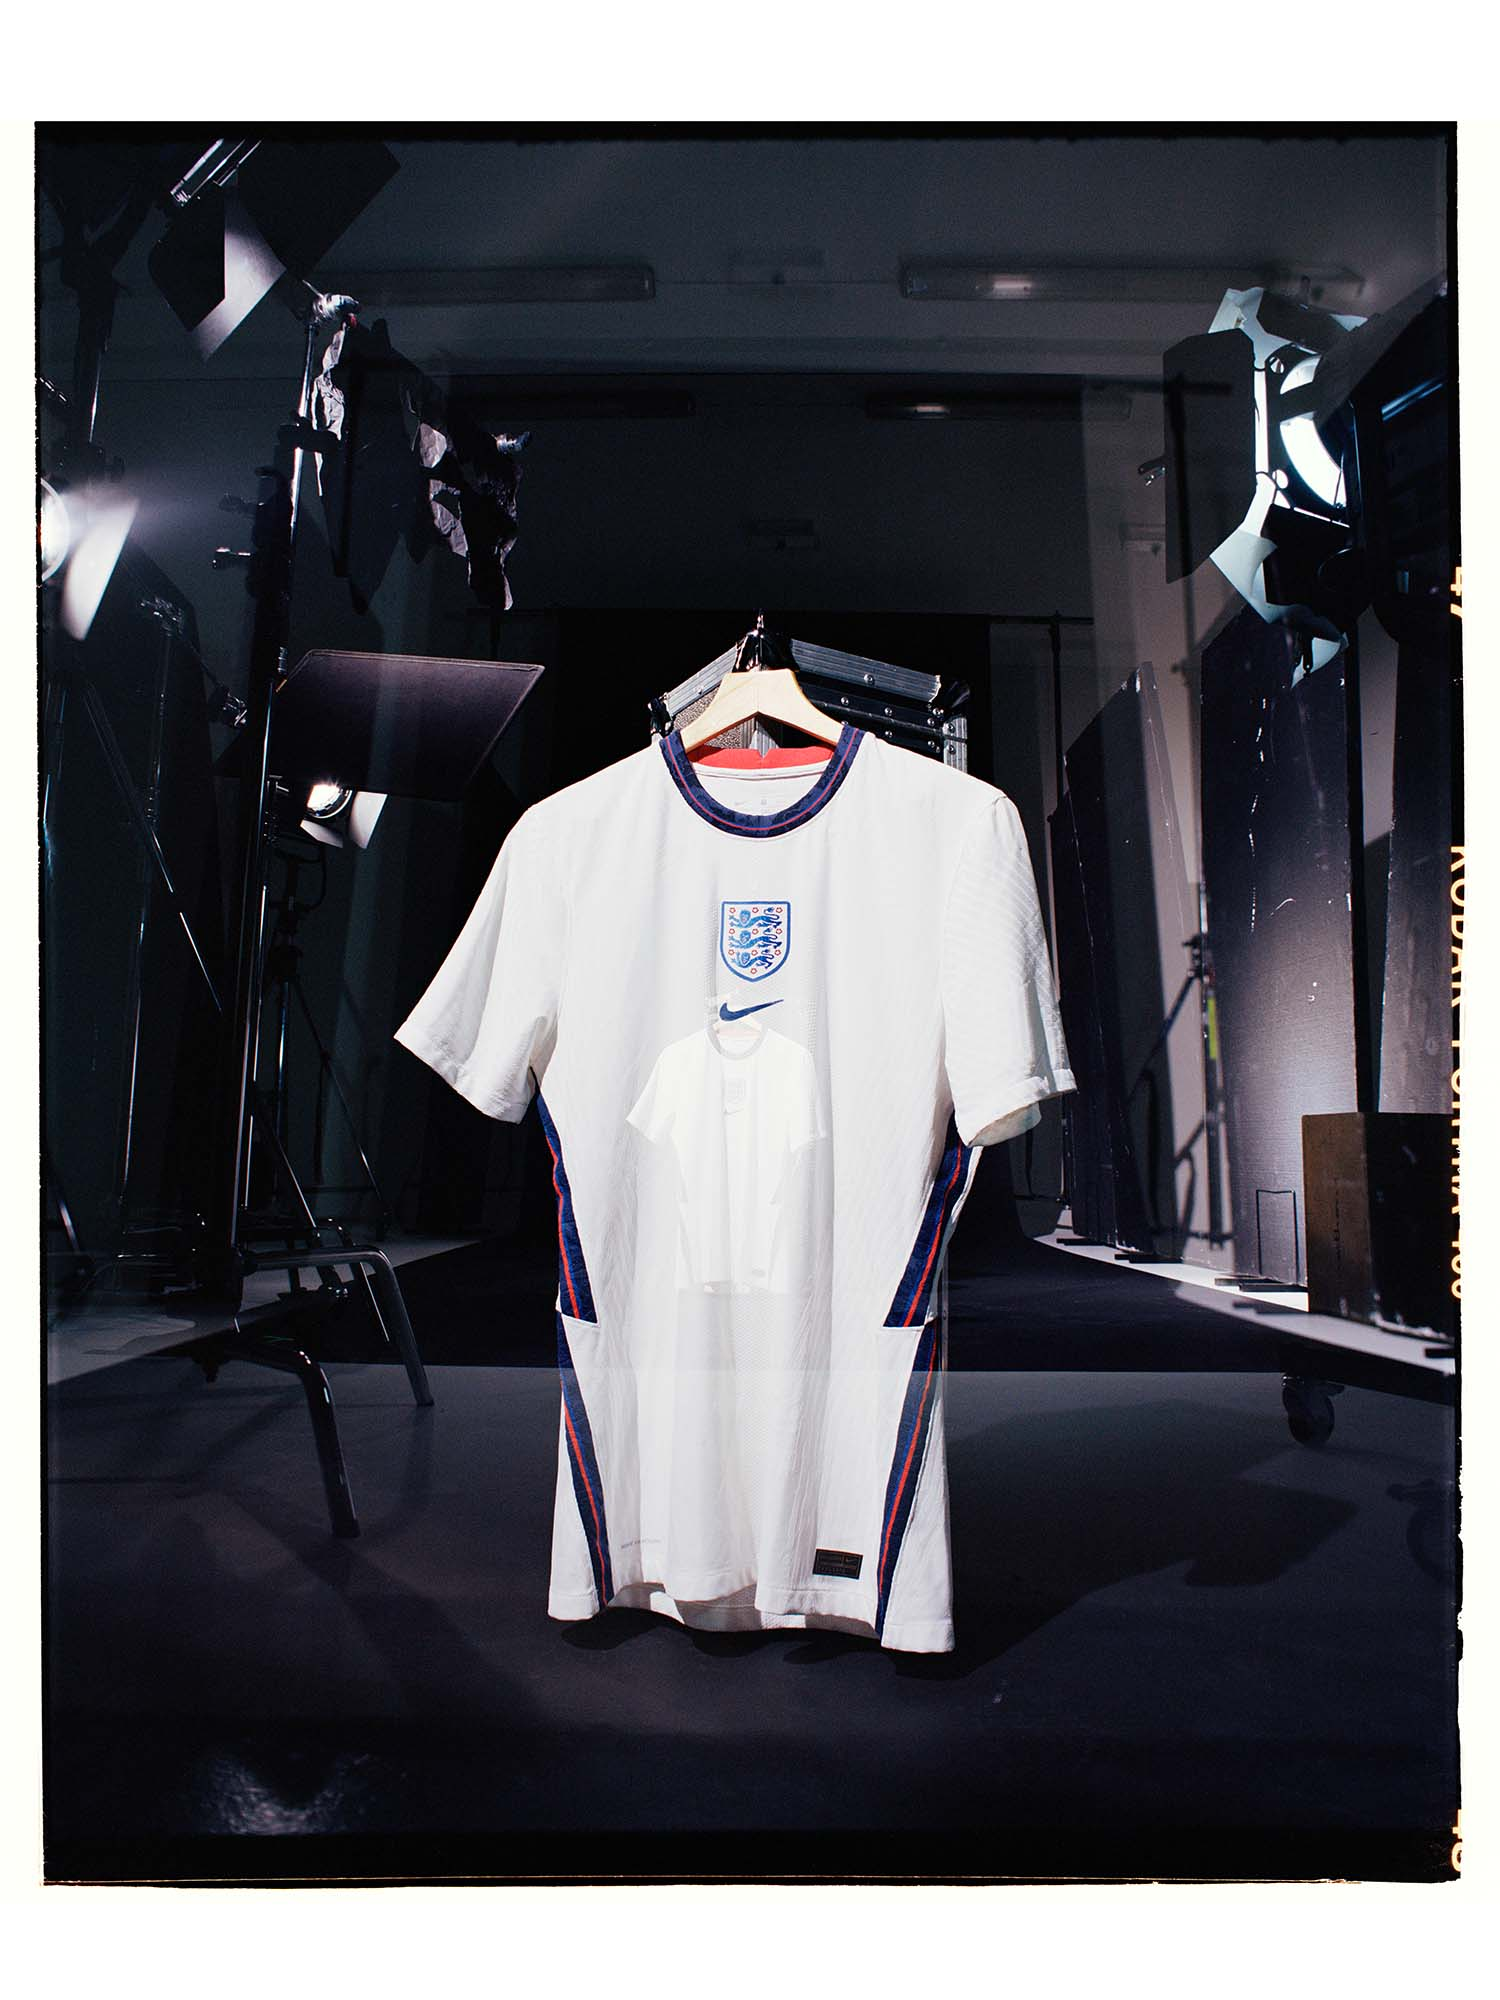 jadon sancho soccerbible interview england portrait_0000_jph180820_ 012.Tick.jpg